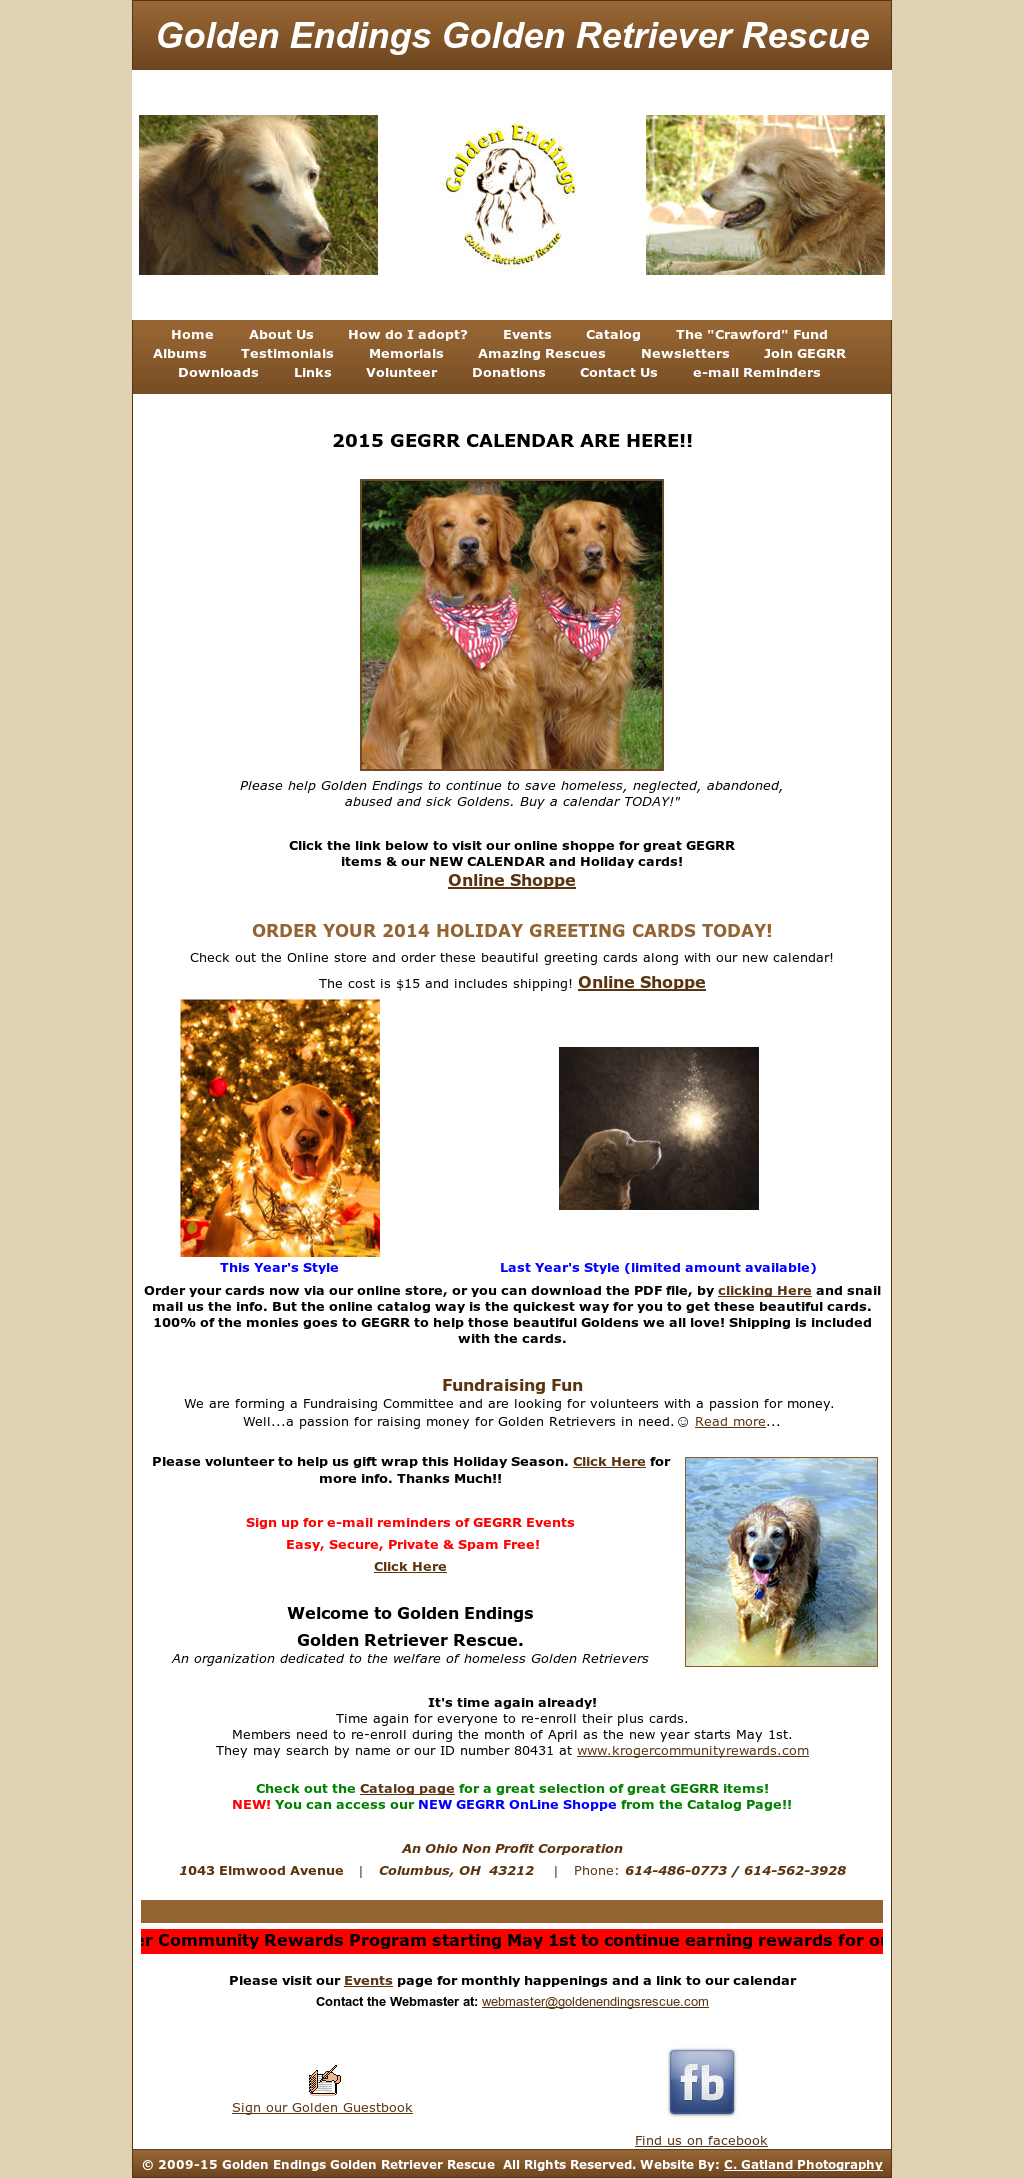 Golden Endings Golden Retriever Rescue Competitors, Revenue and